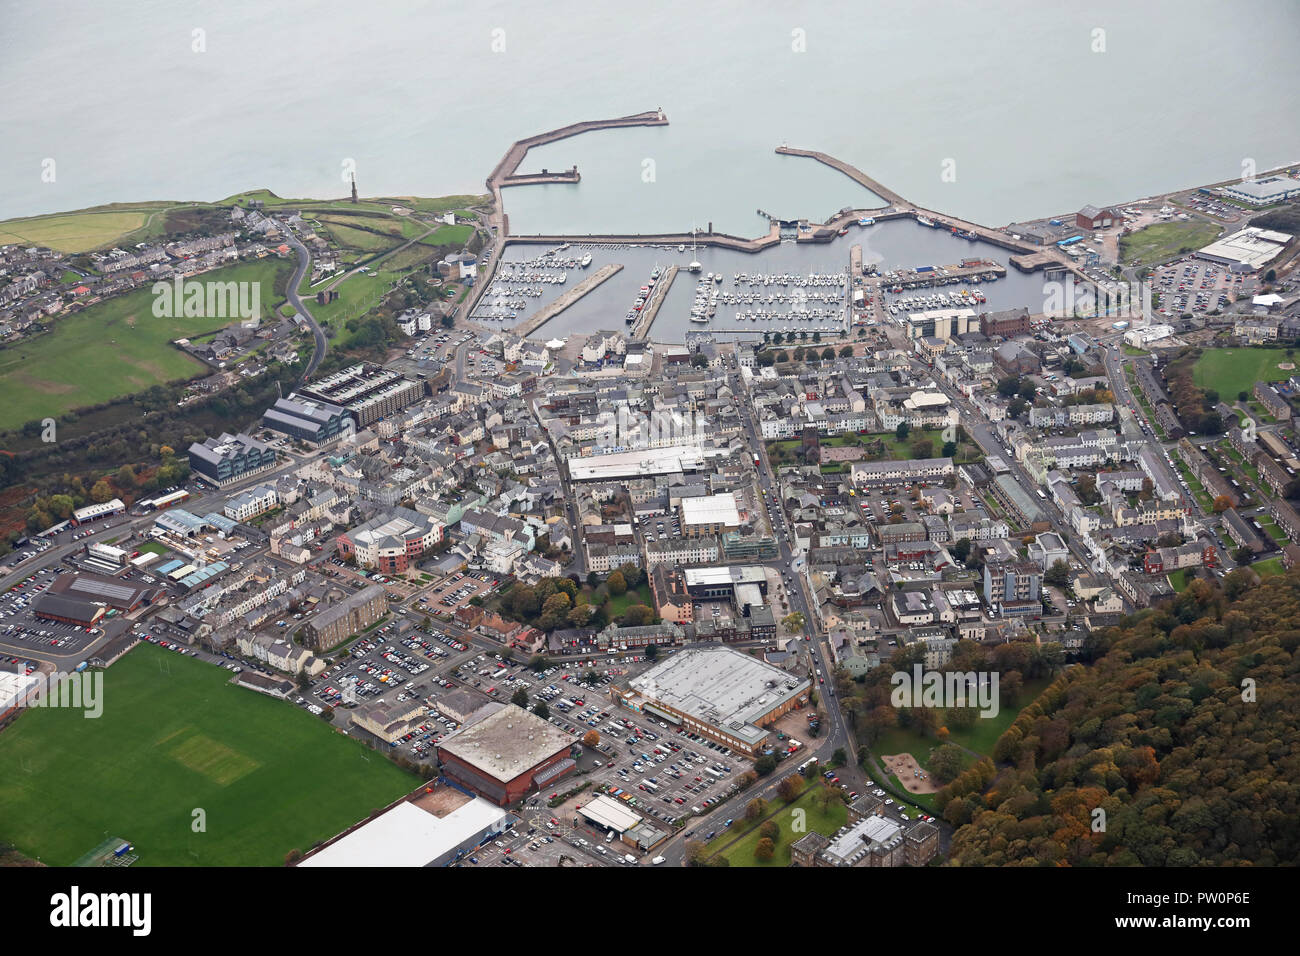 aerial view of the Cumbrian coast town of Whitehaven - Stock Image